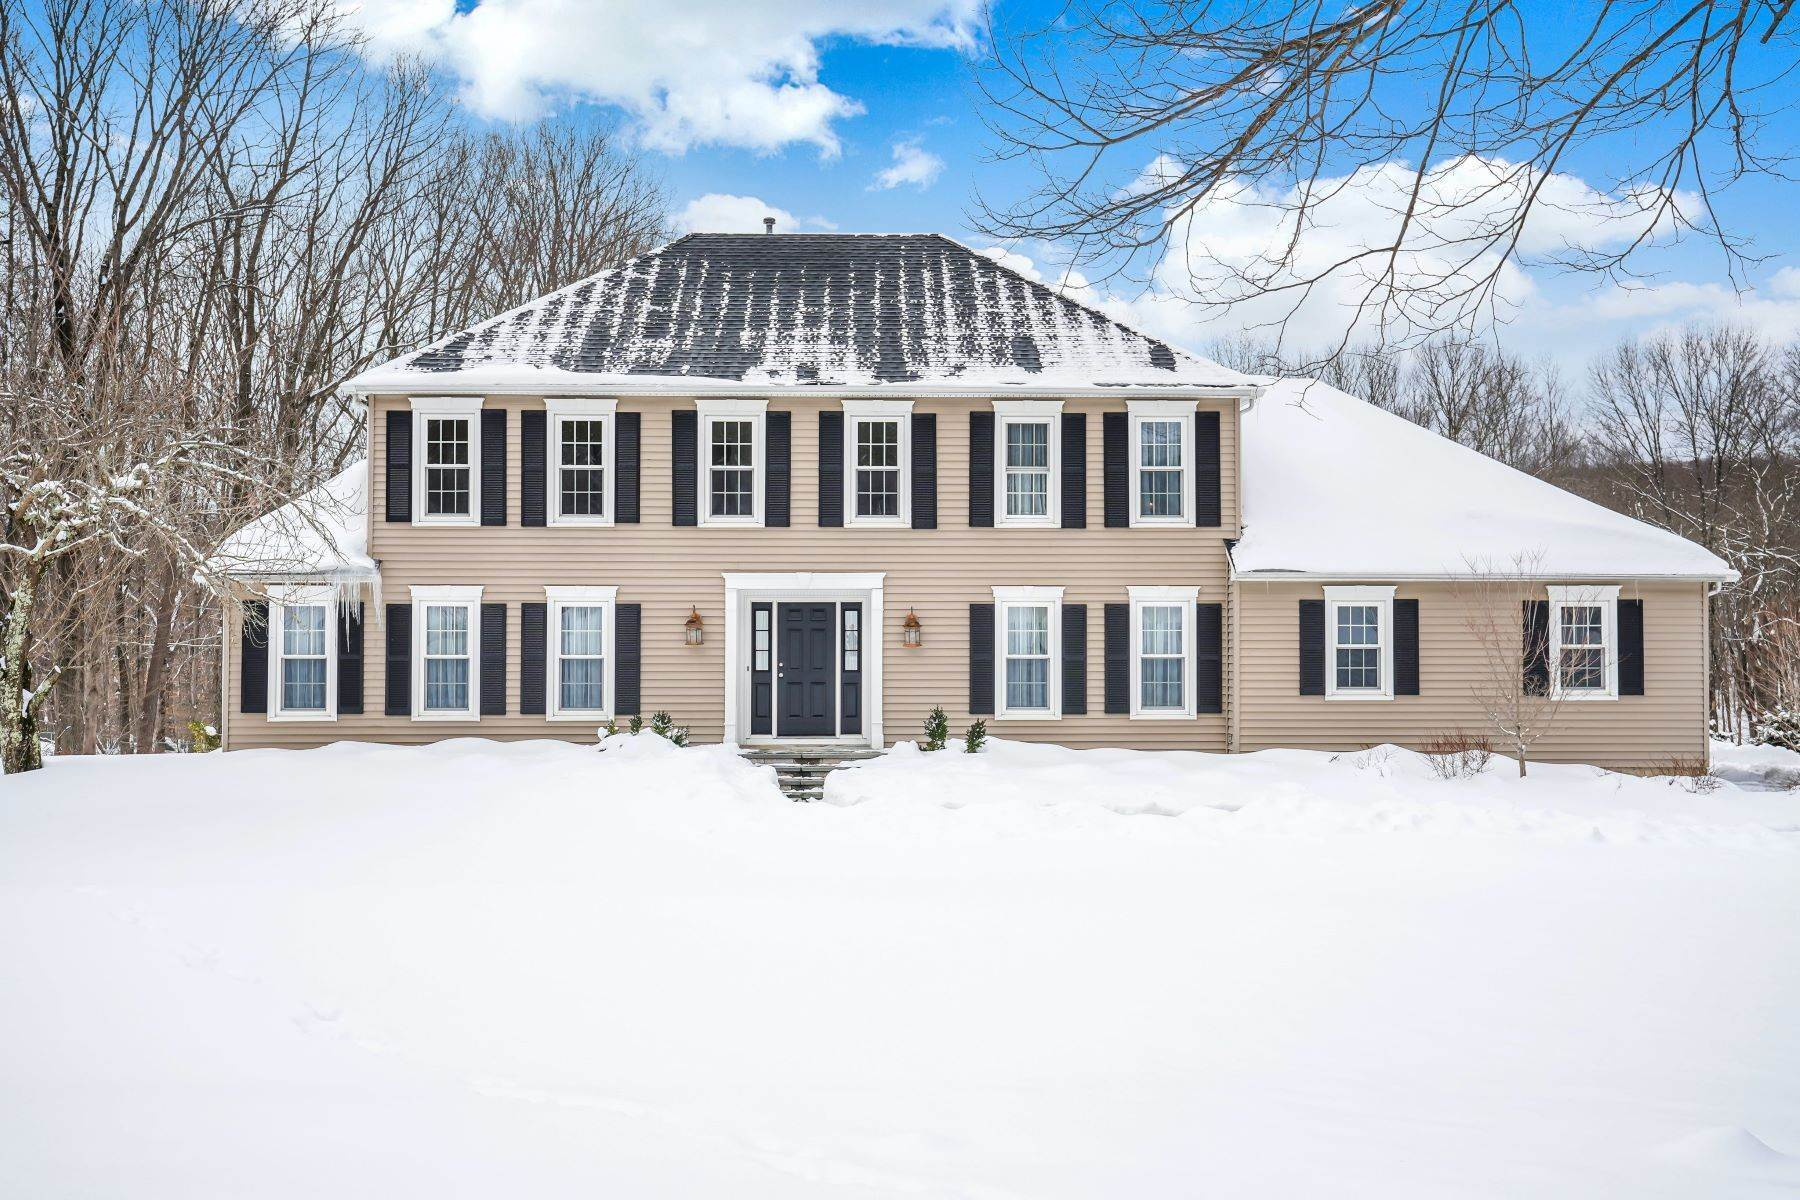 Single Family Homes for Sale at Exceptional Property 24 Cromwell Drive Randolph, New Jersey 07945 United States